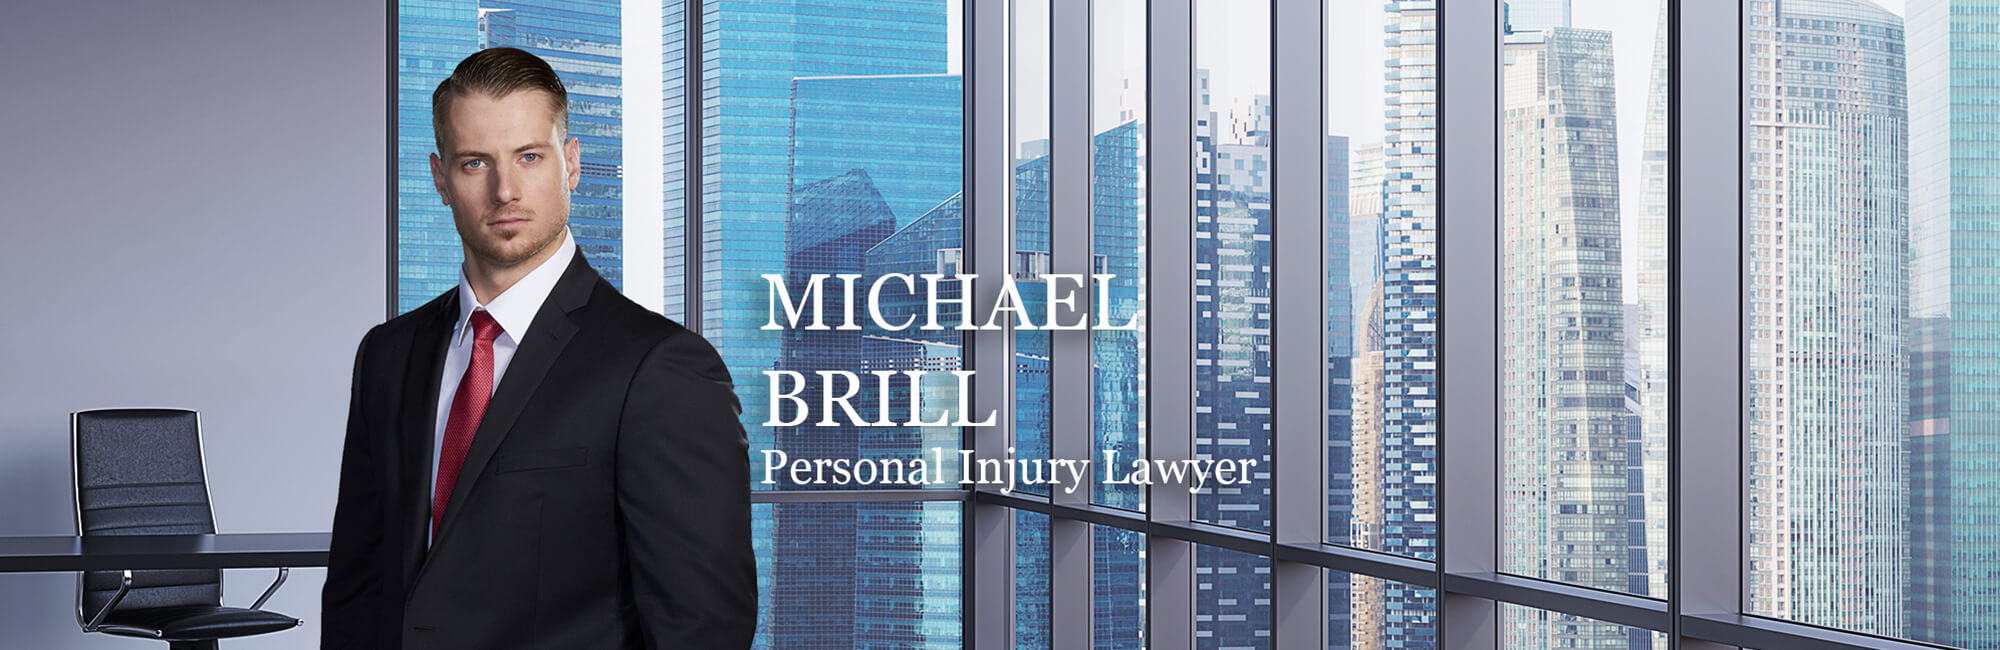 Brill Law - Personal Injury Lawyer